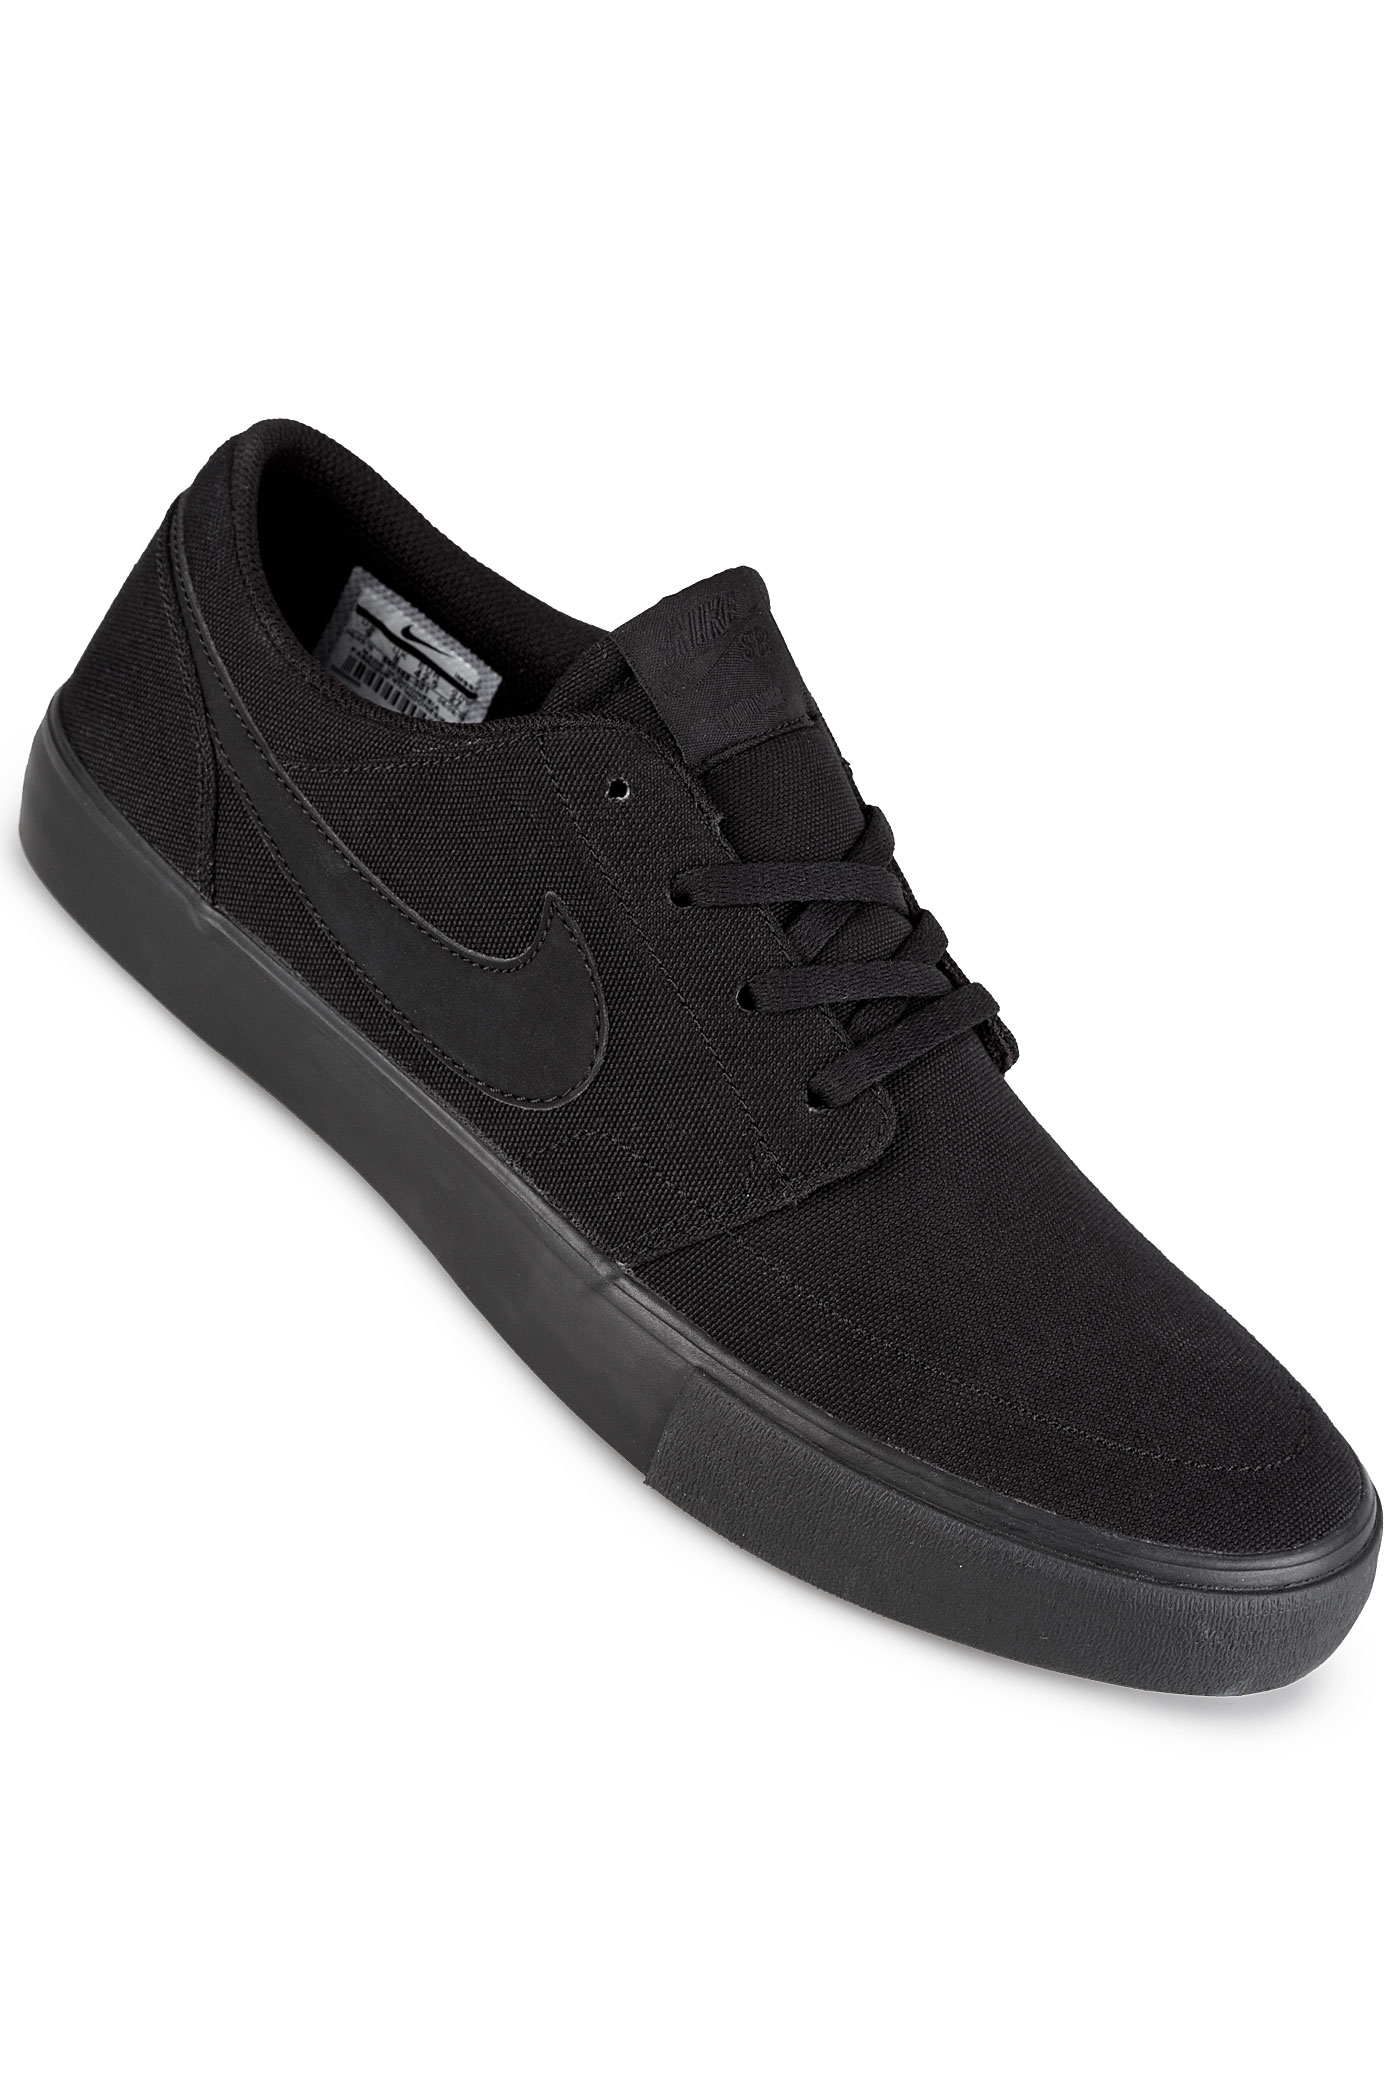 nike sb solarsoft portmore ii canvas schuh black black kaufen bei skatedeluxe. Black Bedroom Furniture Sets. Home Design Ideas